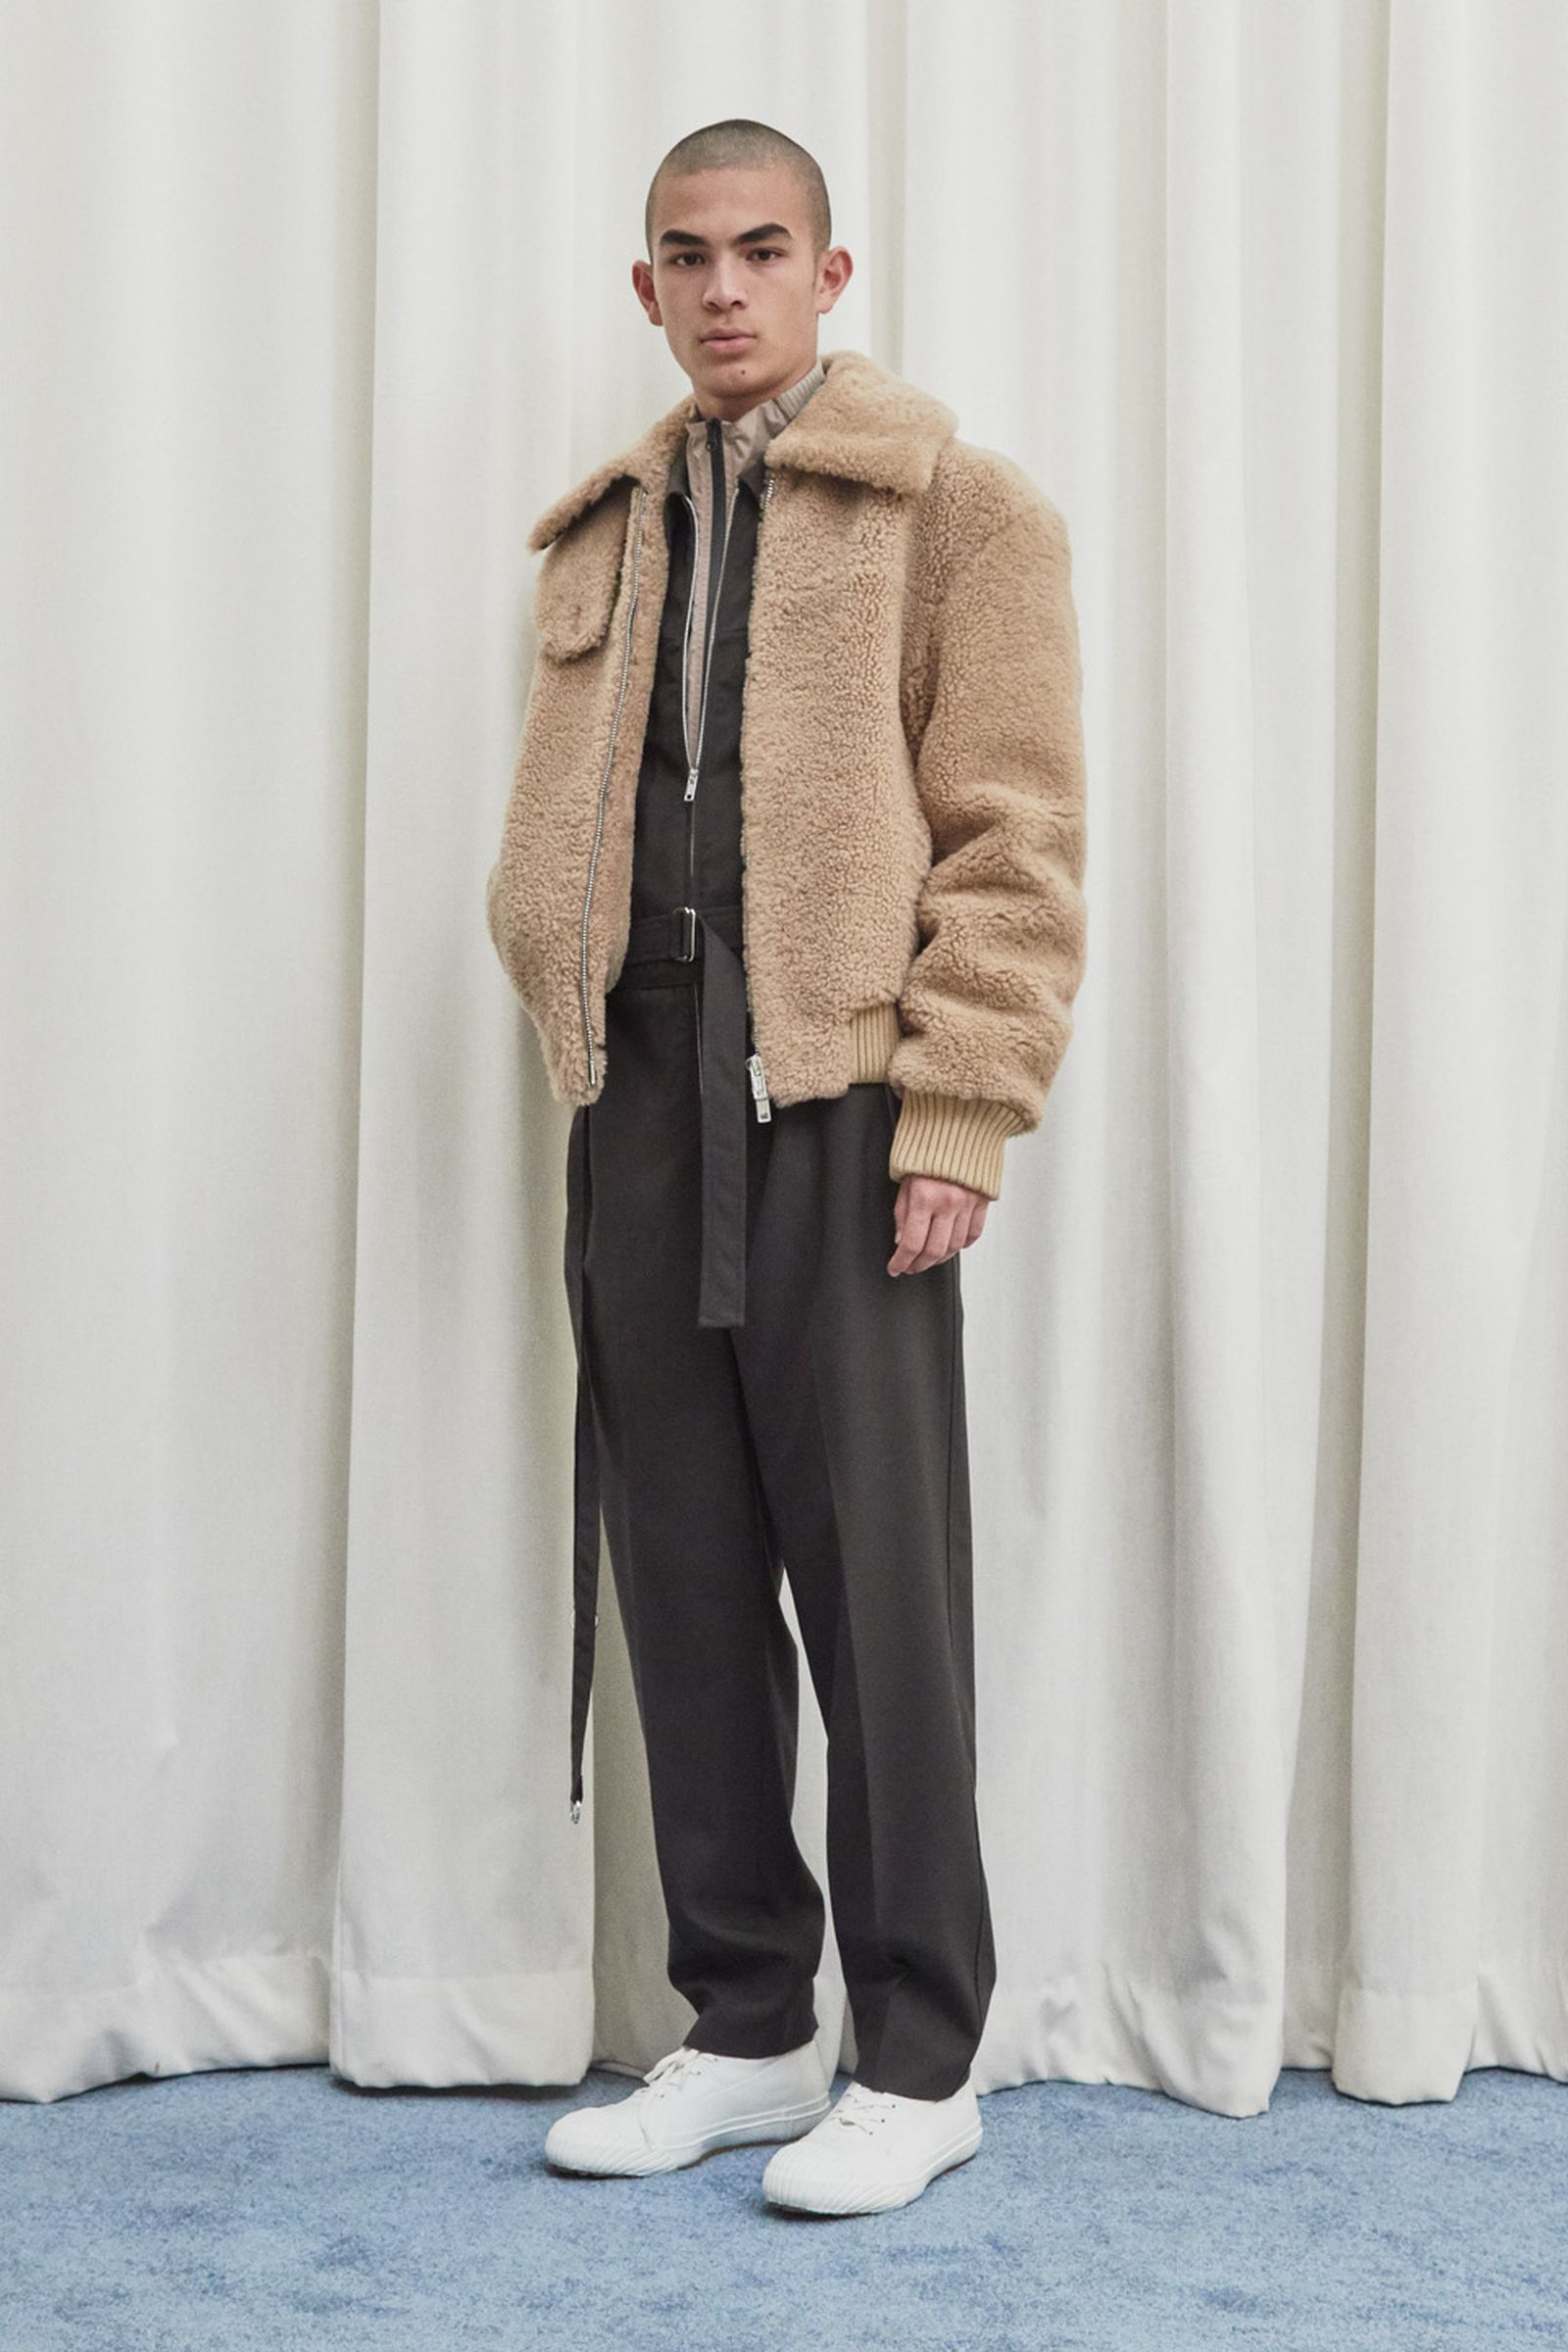 Plim FW19 Mens Collections Lores 12 3.1 phillip lim fall 2019